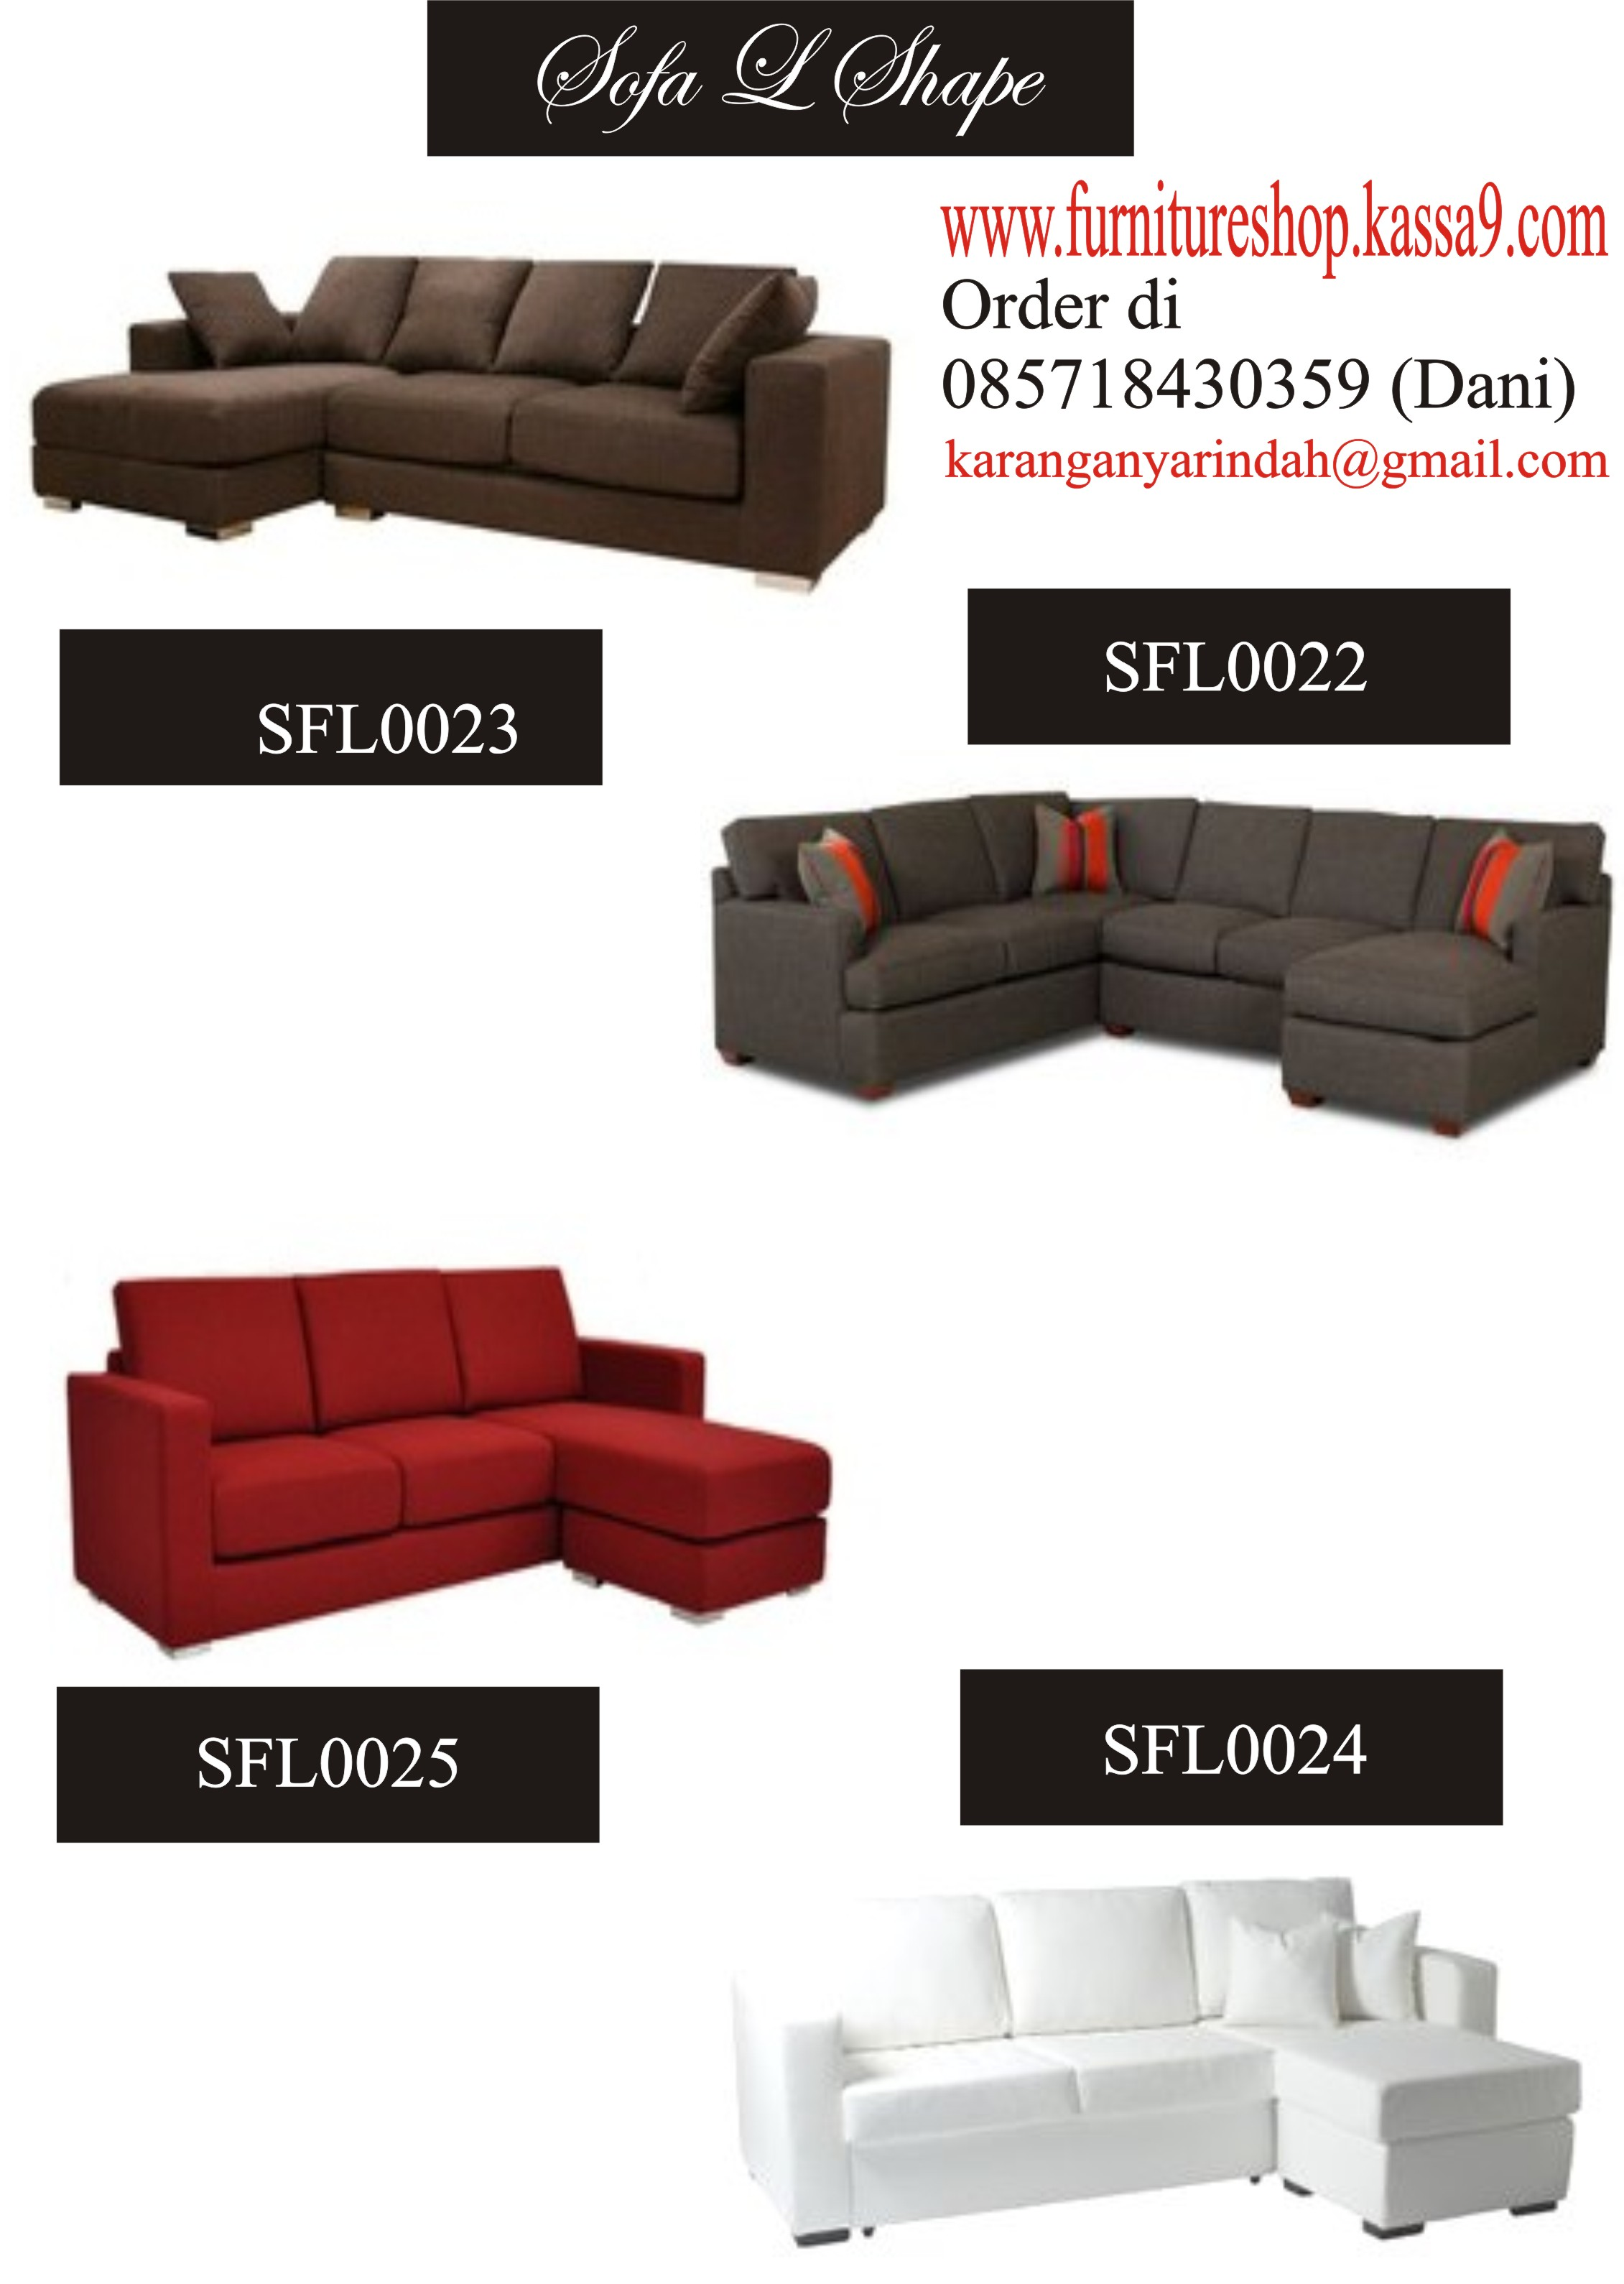 SFL3 SOFA L SHAPE 22 24